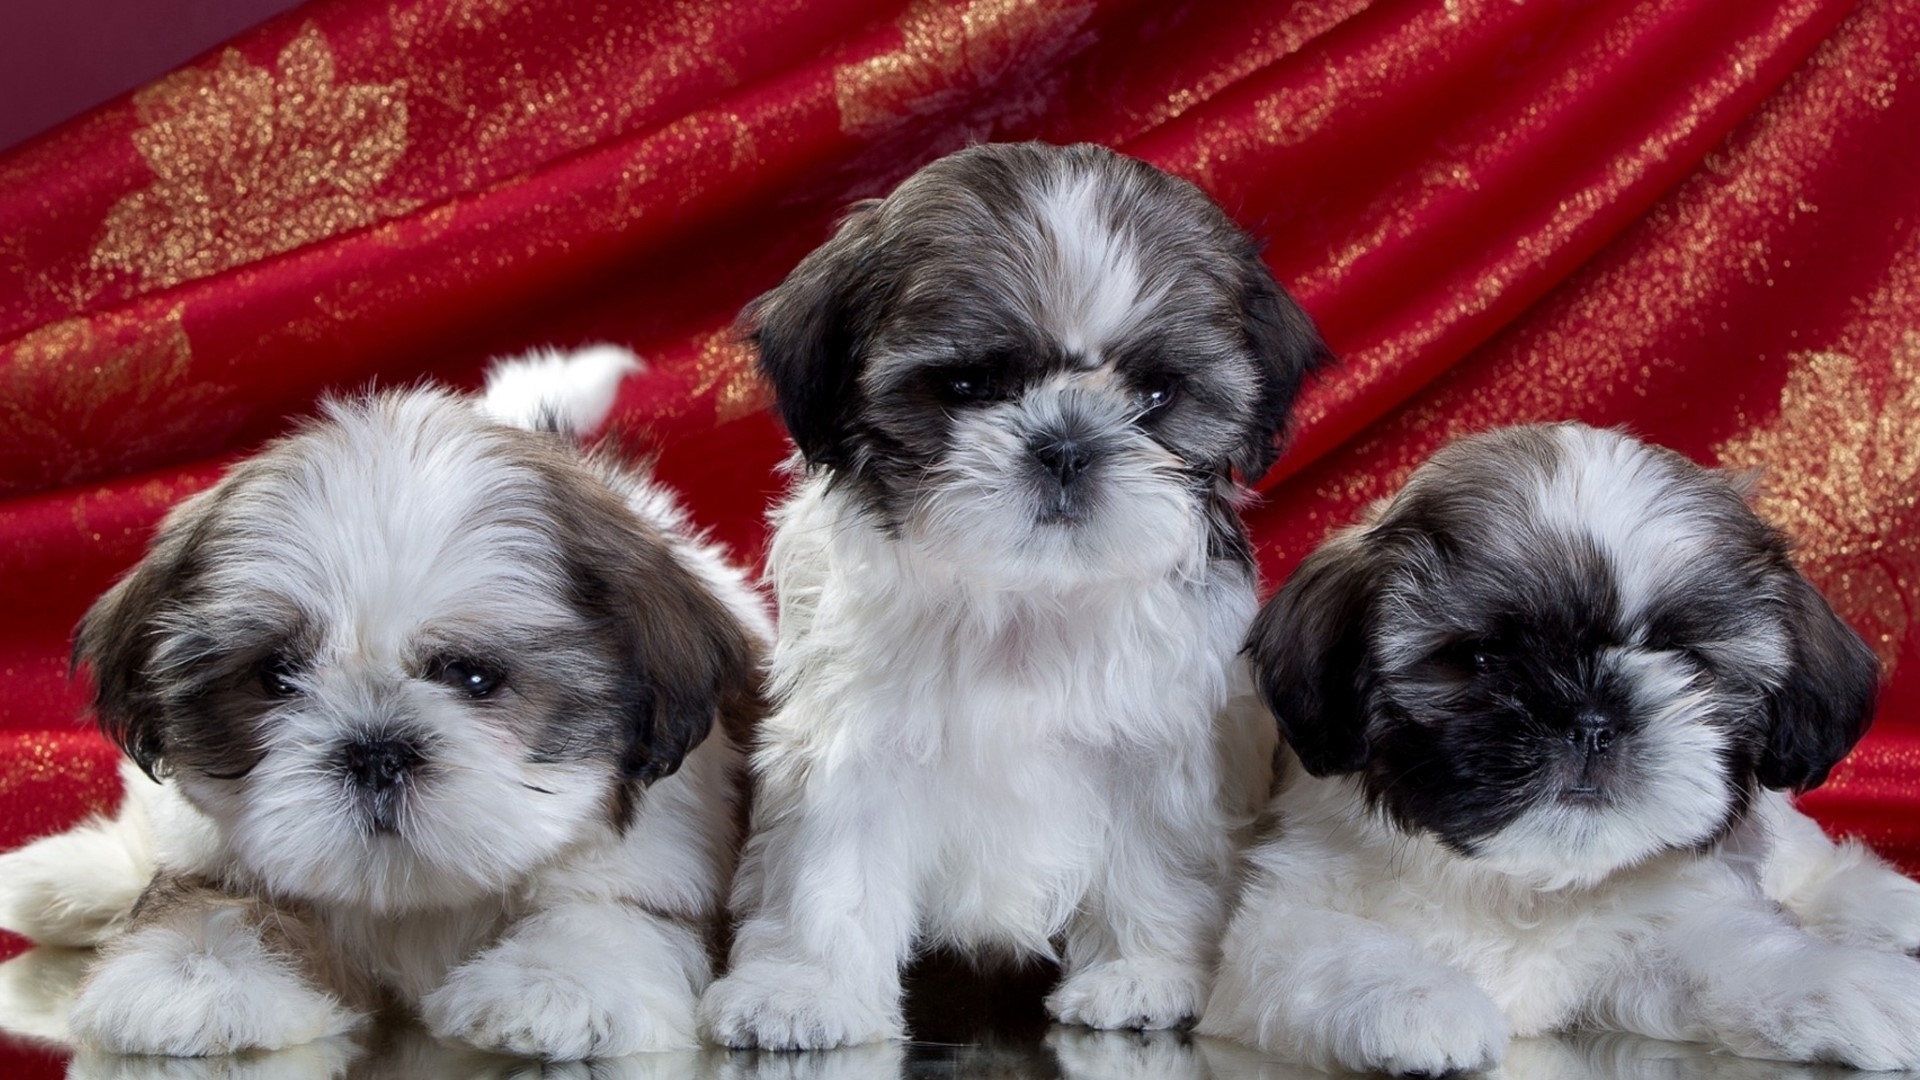 Shih Tzu Wallpaper Iphone Shih Tzu Puppies Fond D 233 Cran Hd Arri 232 Re Plan